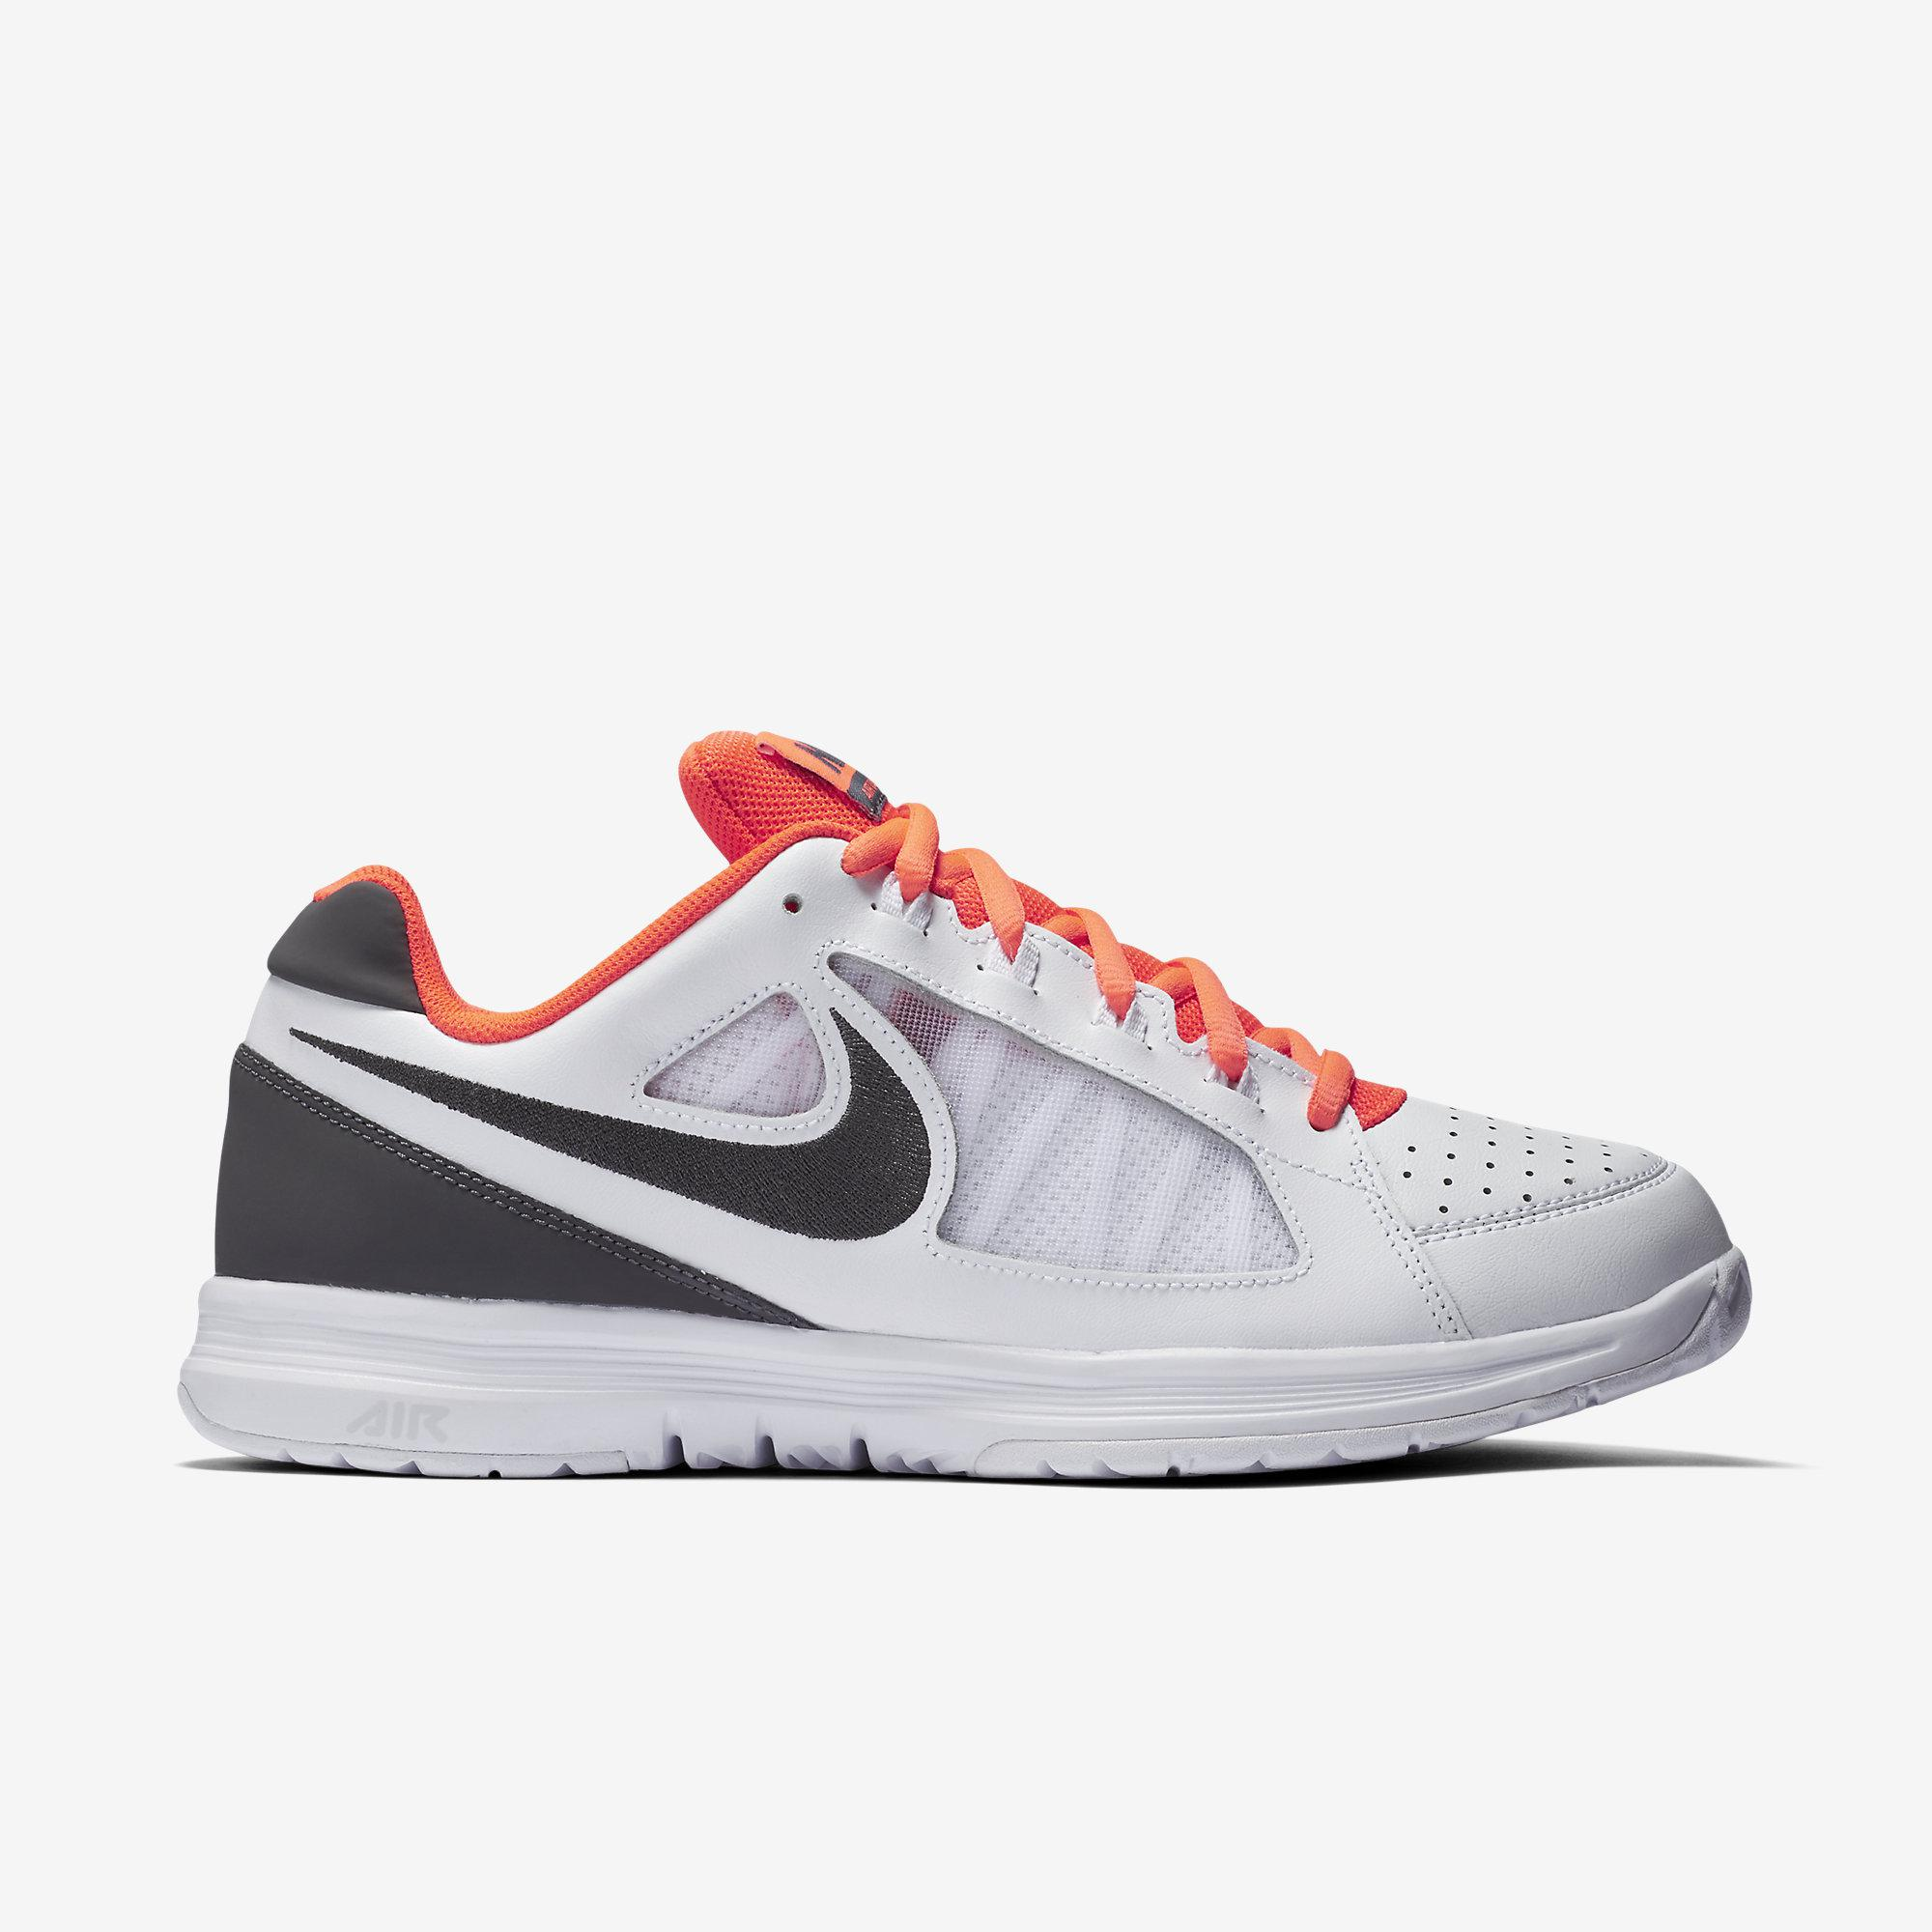 best service 0ae6a 769fa Nike Mens Air Vapor Ace Tennis Shoes - White Grey - Tennisnuts.com